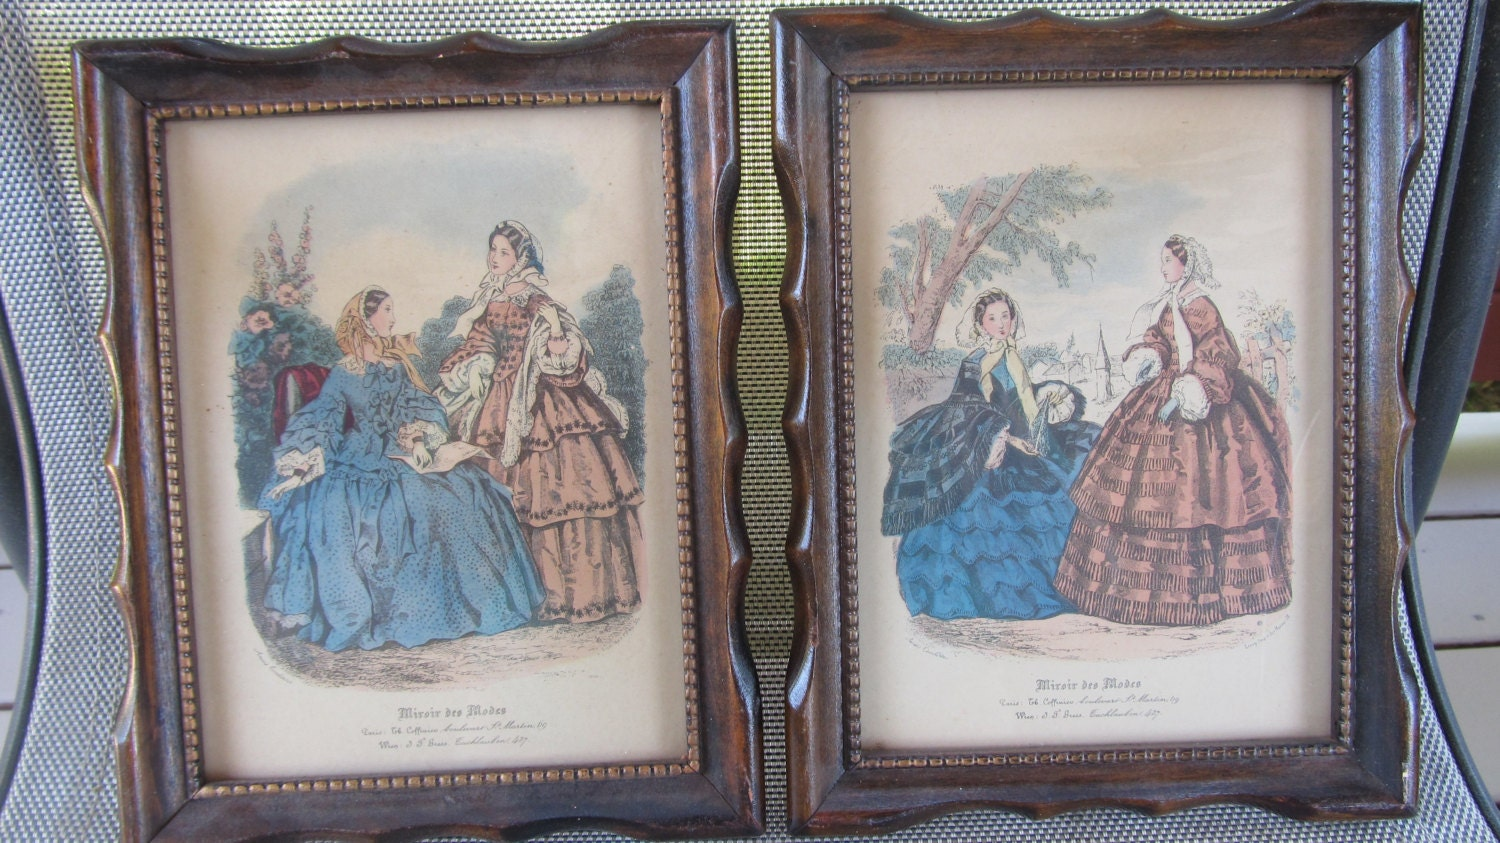 Vintage framed set of leroy miroir des modes by sandrasveranda for Miroir des modes value